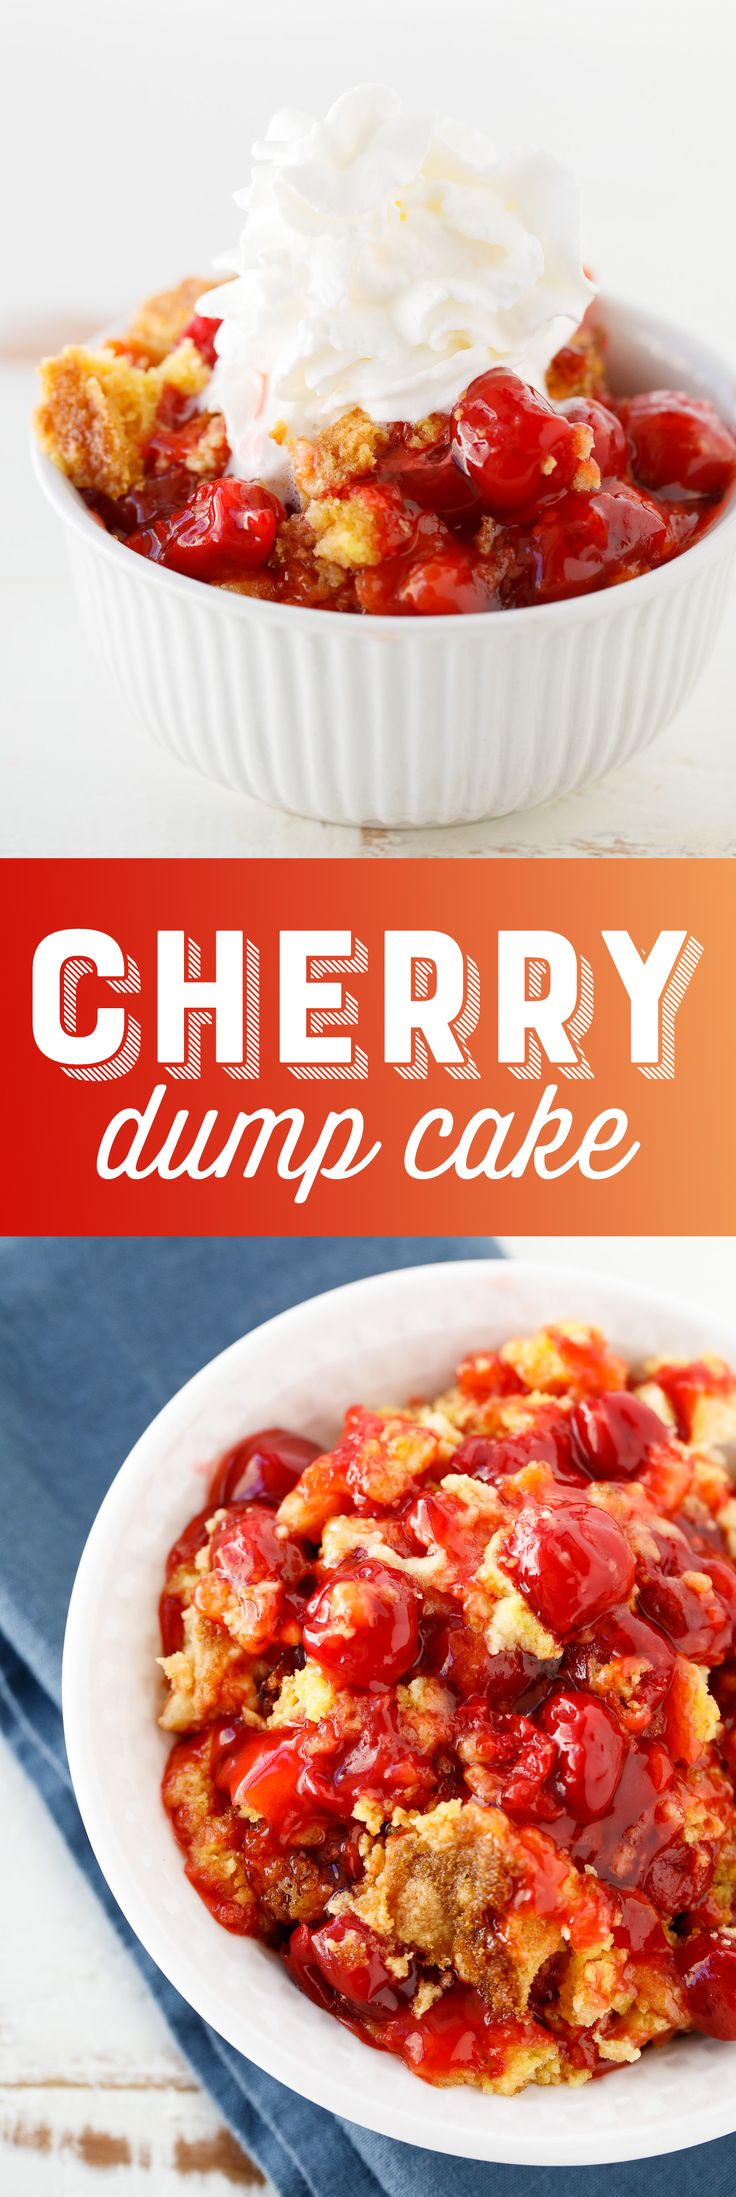 This easy cherry dump cake recipe is the perfect lazy dessert!